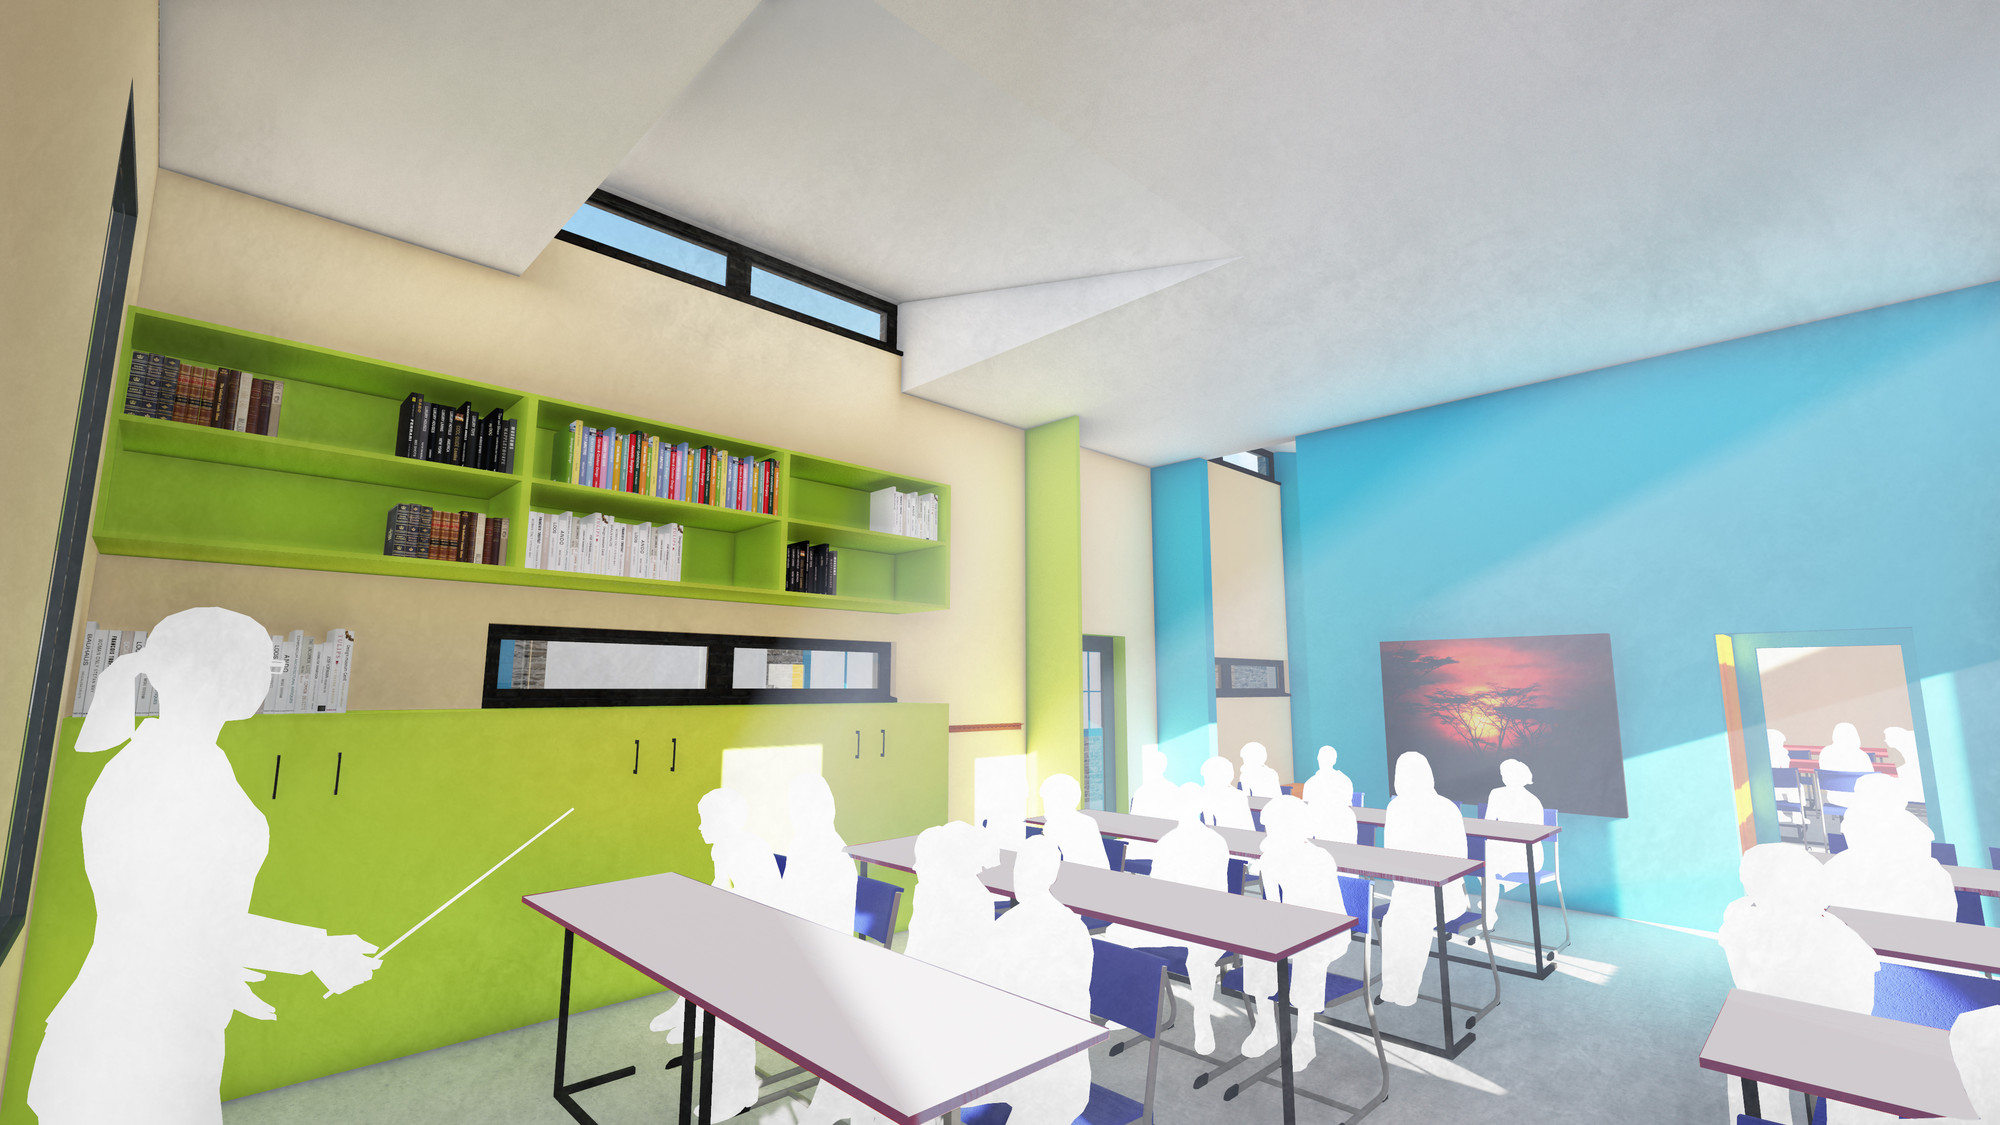 Classroom Building Design ~ Place by design wins cool school competition